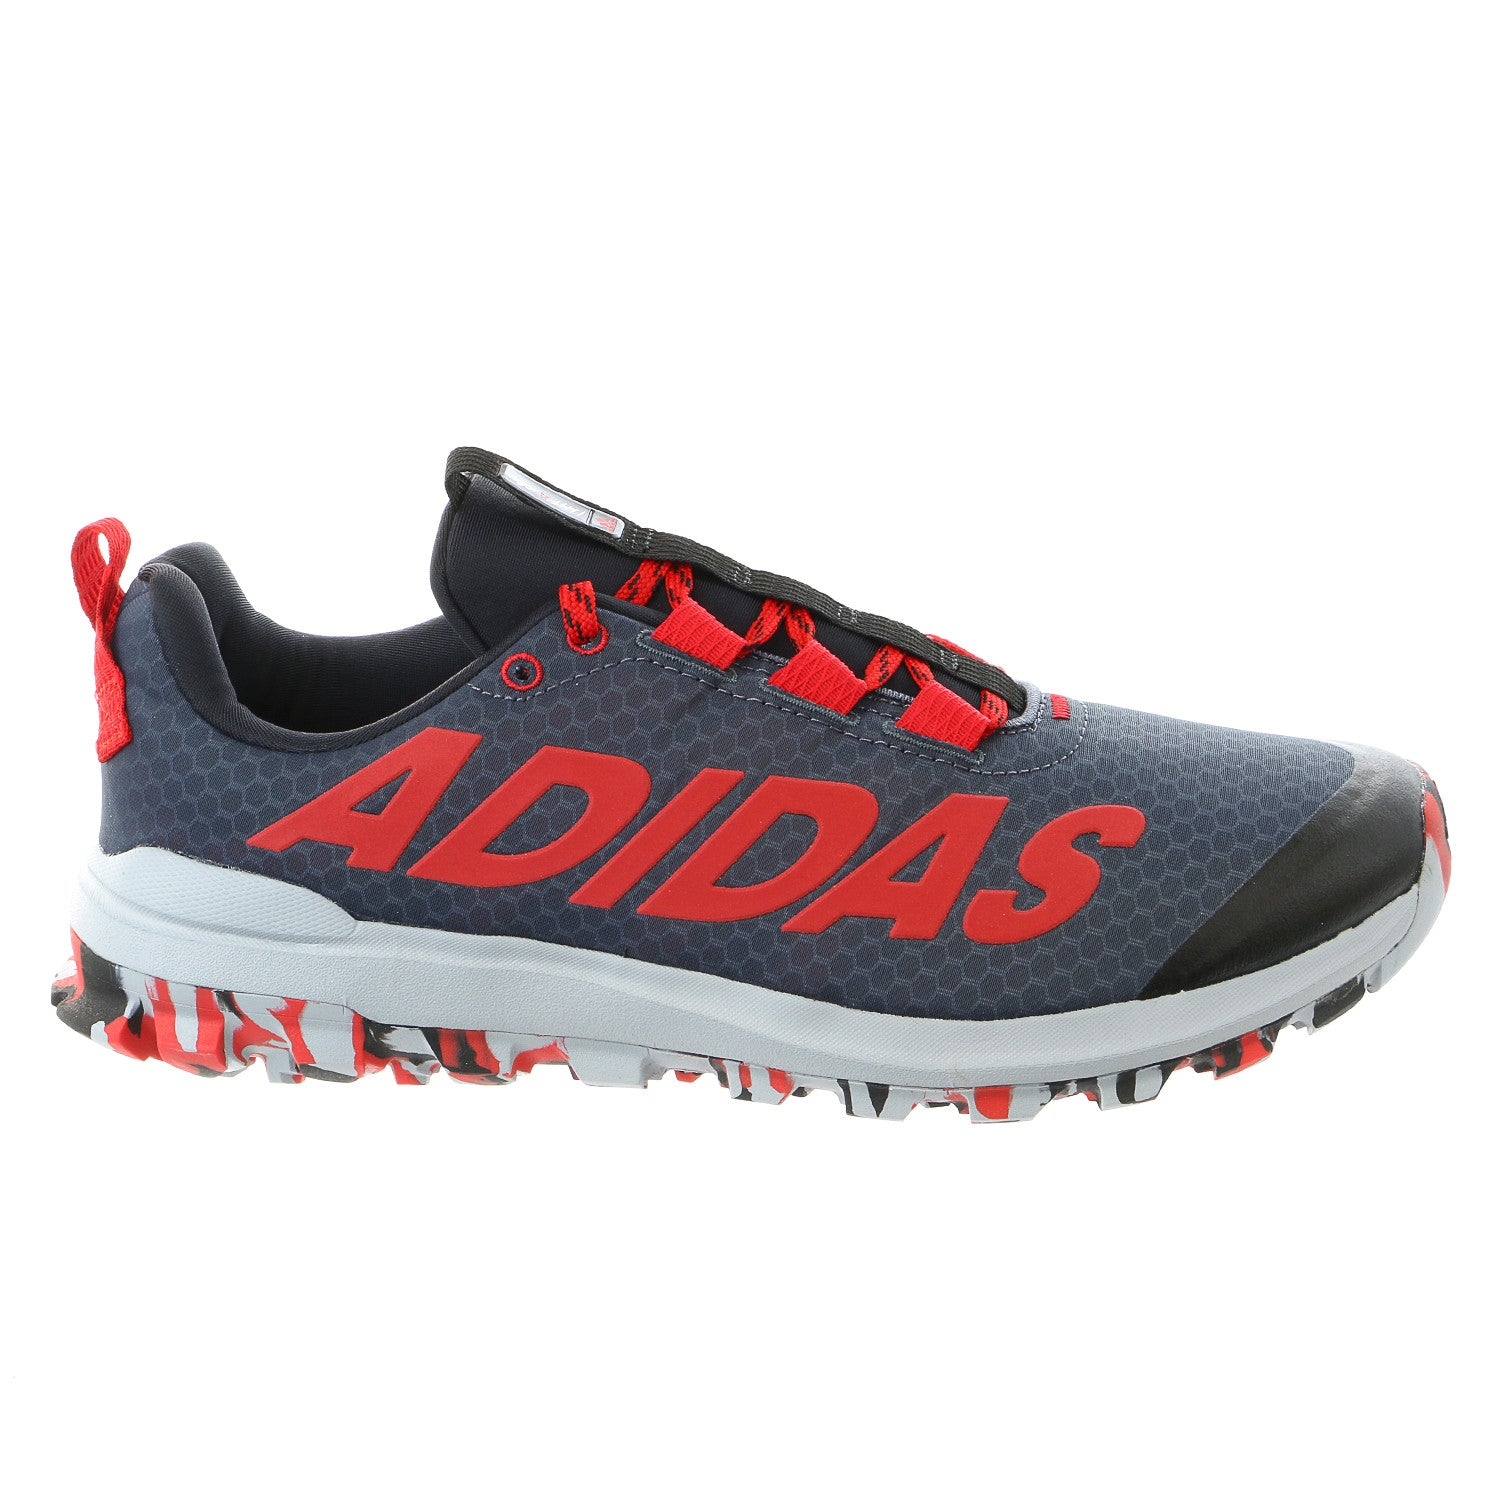 26623c4dd Adidas Vigor 6 TR M Trail Running Sneaker Shoe - Black Red Light Grey - Mens